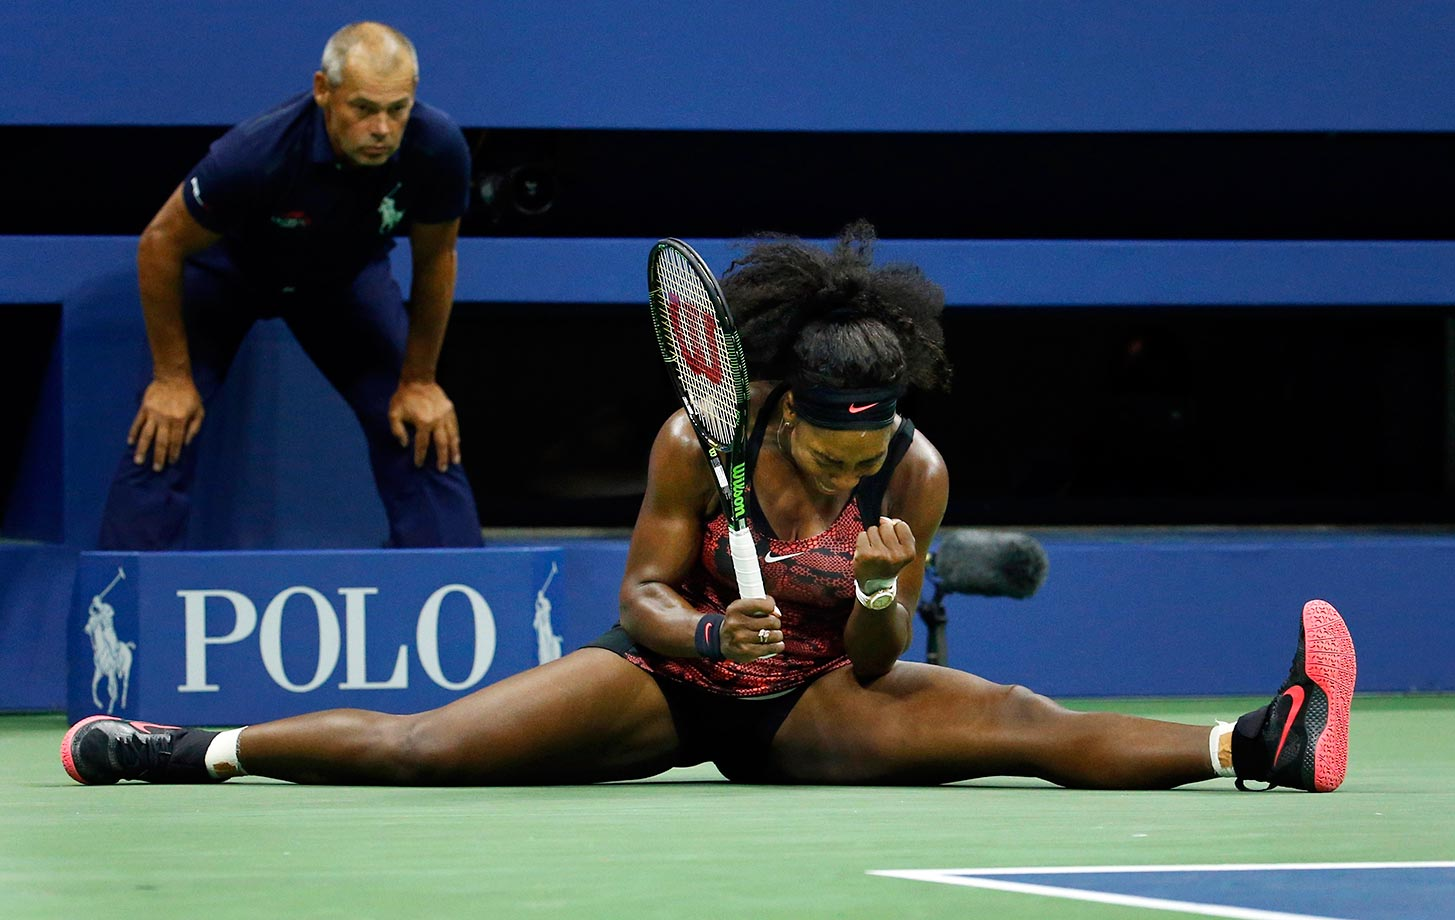 Serena Williams reacts after a point against Bethanie Mattek-Sands during the third round of the U.S. Open.